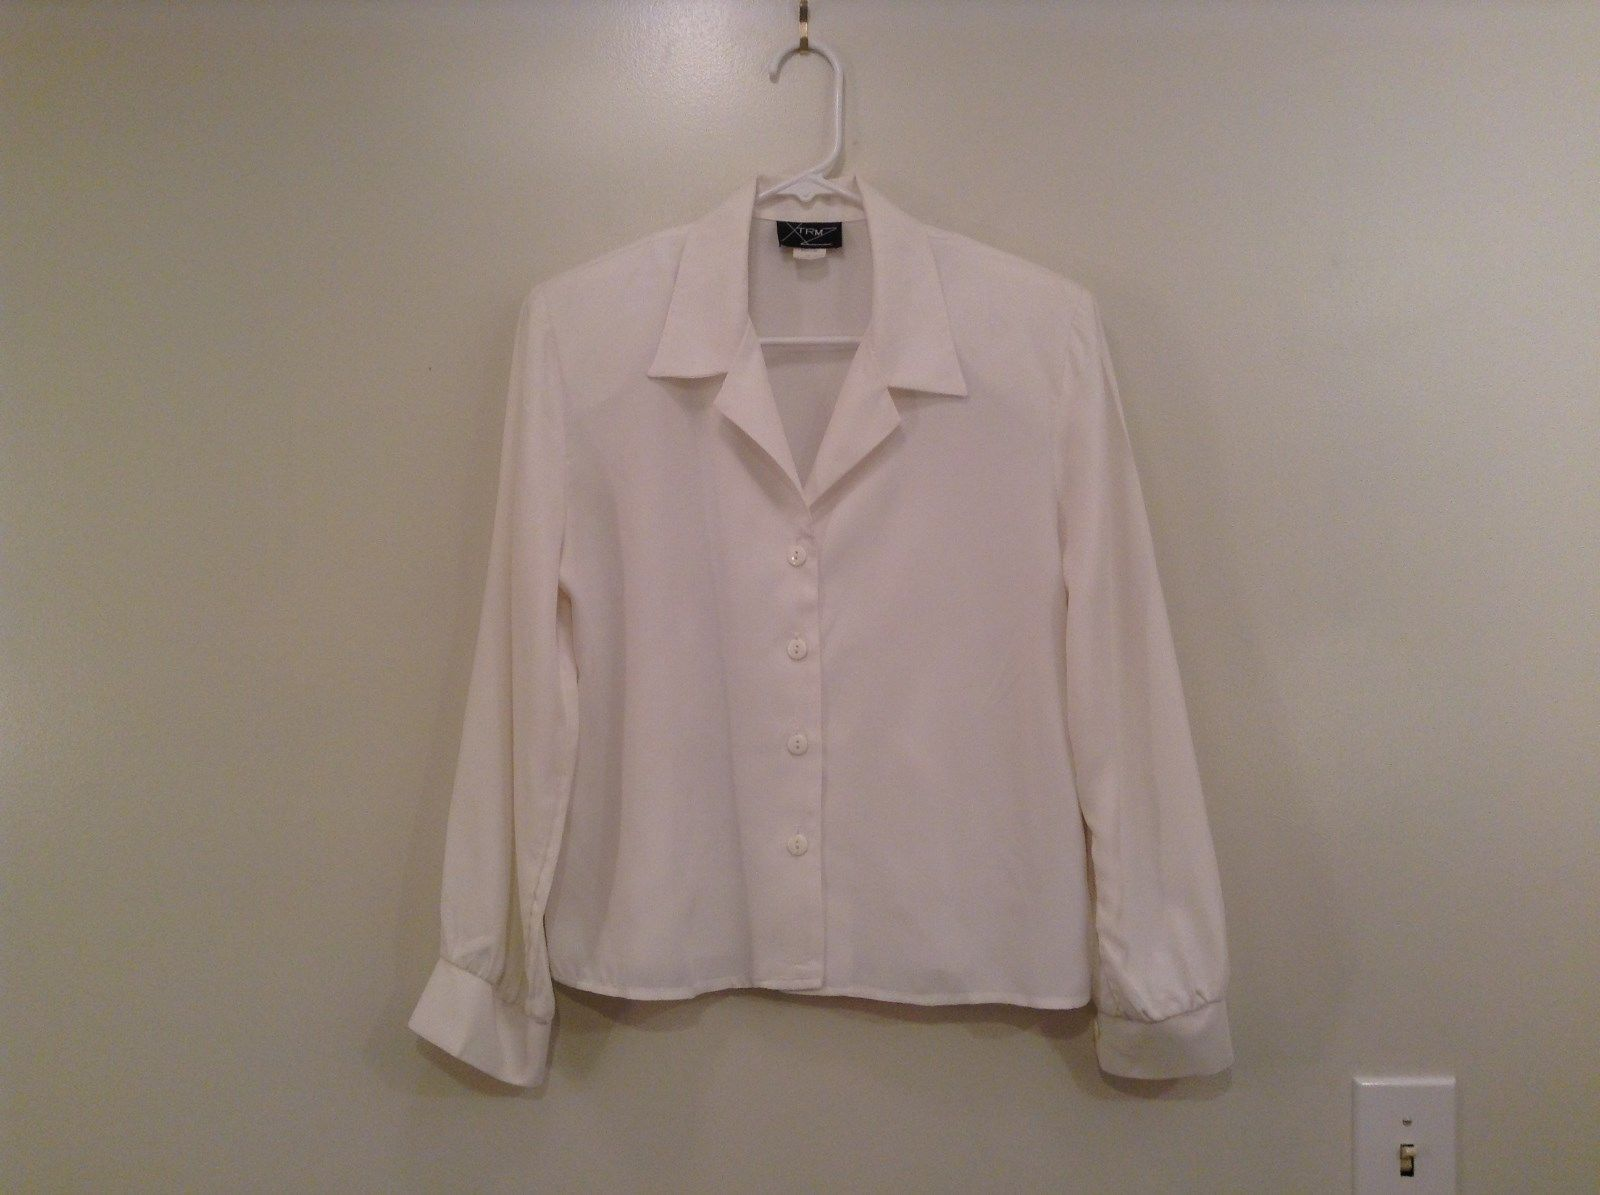 XTRMZ Size 7 to 8 Long Sleeve White Button Up Blouse Padded Shoulders